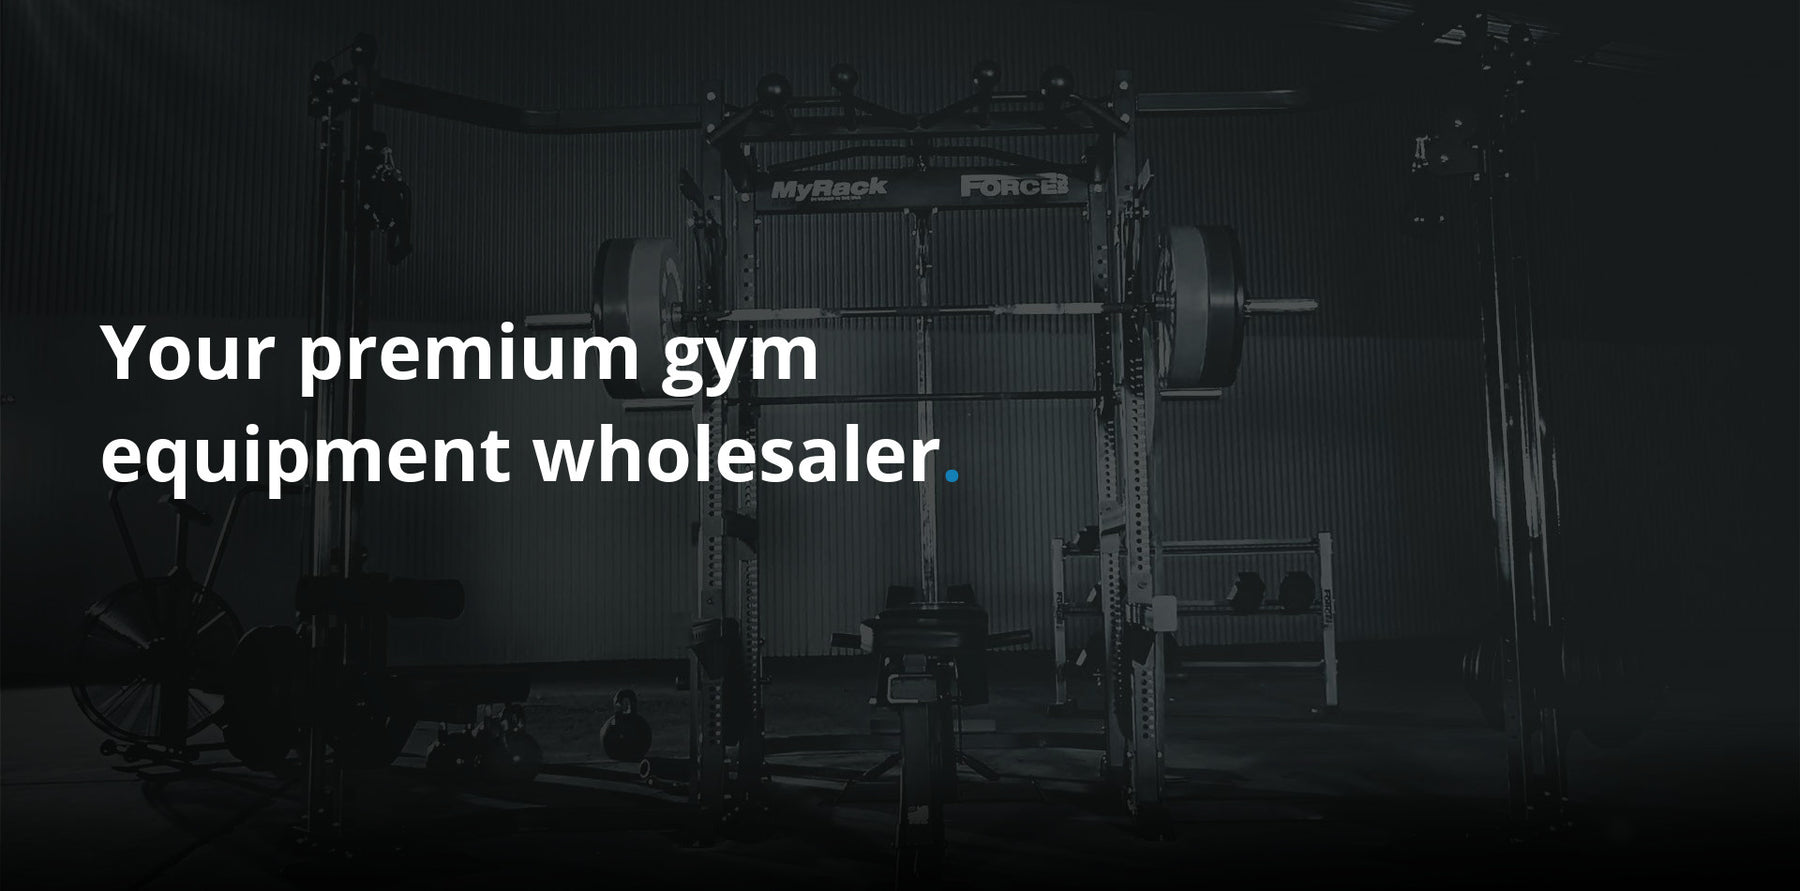 Australian fitness supplies wholesale gym equipment